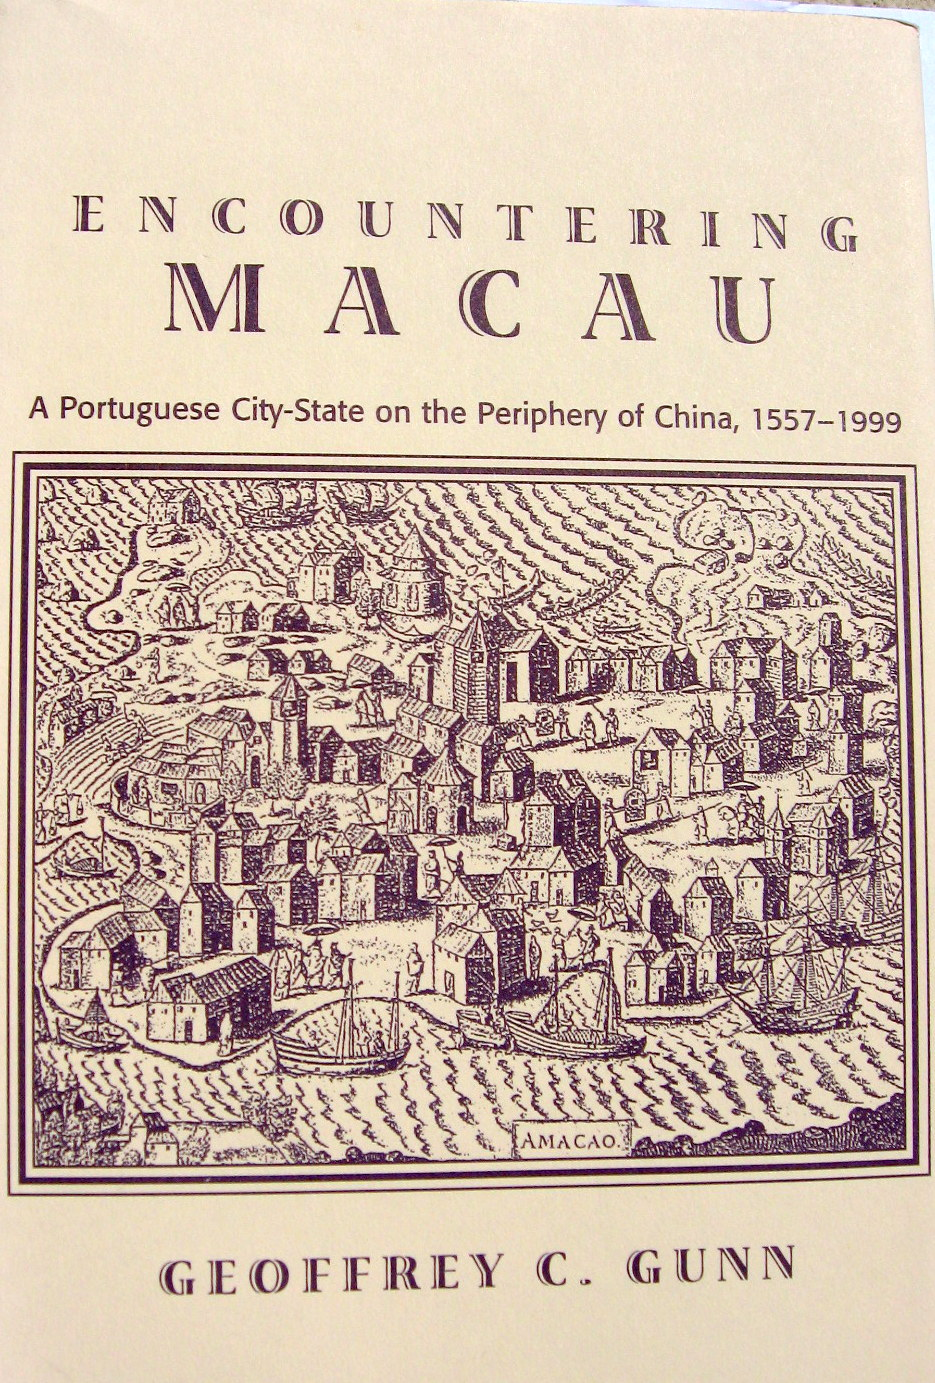 Encountering Macau: A Portuguese City-state on the Periphery of China, 1557-1999